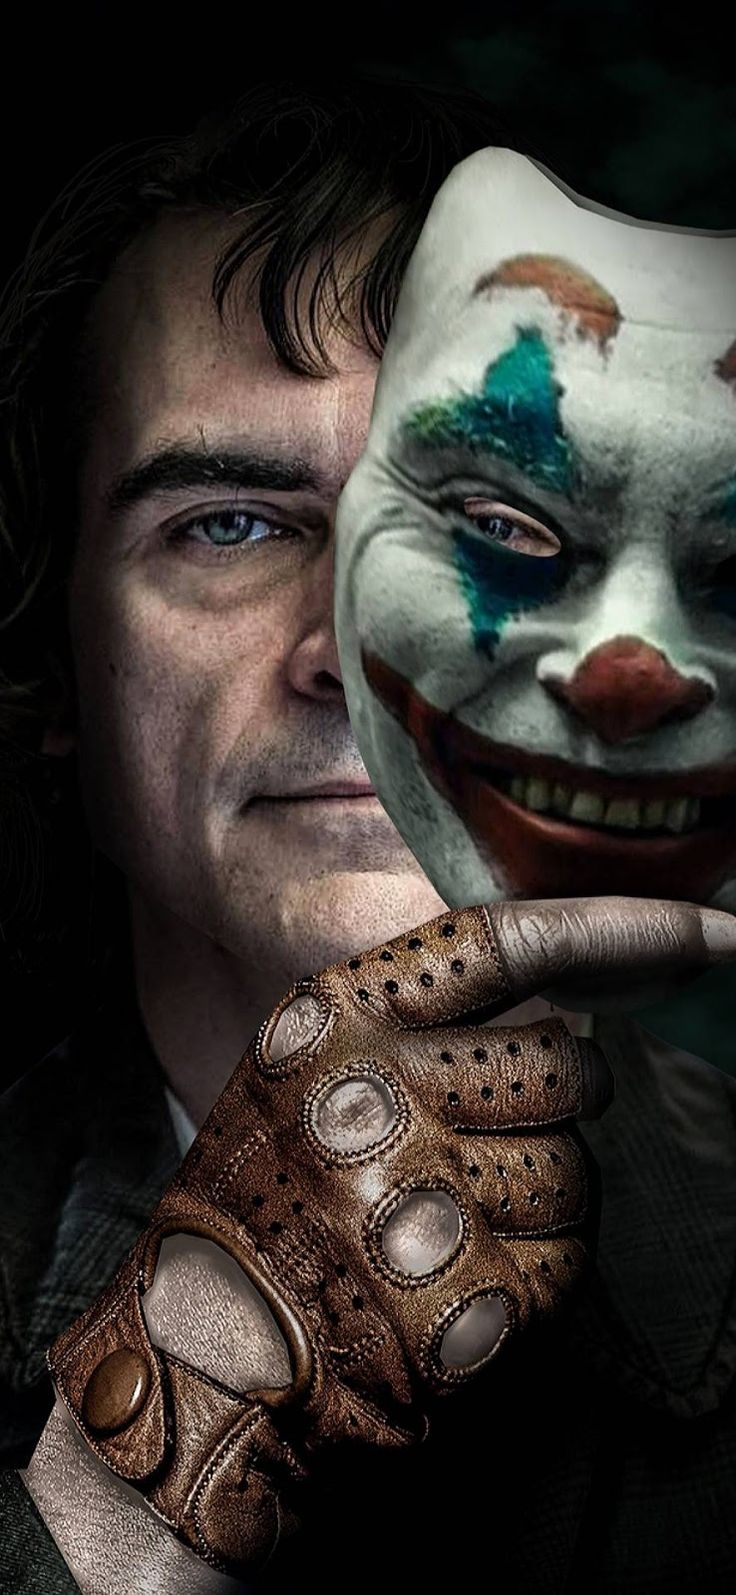 Jocker Full HD Images for mobile and PC background in 2020